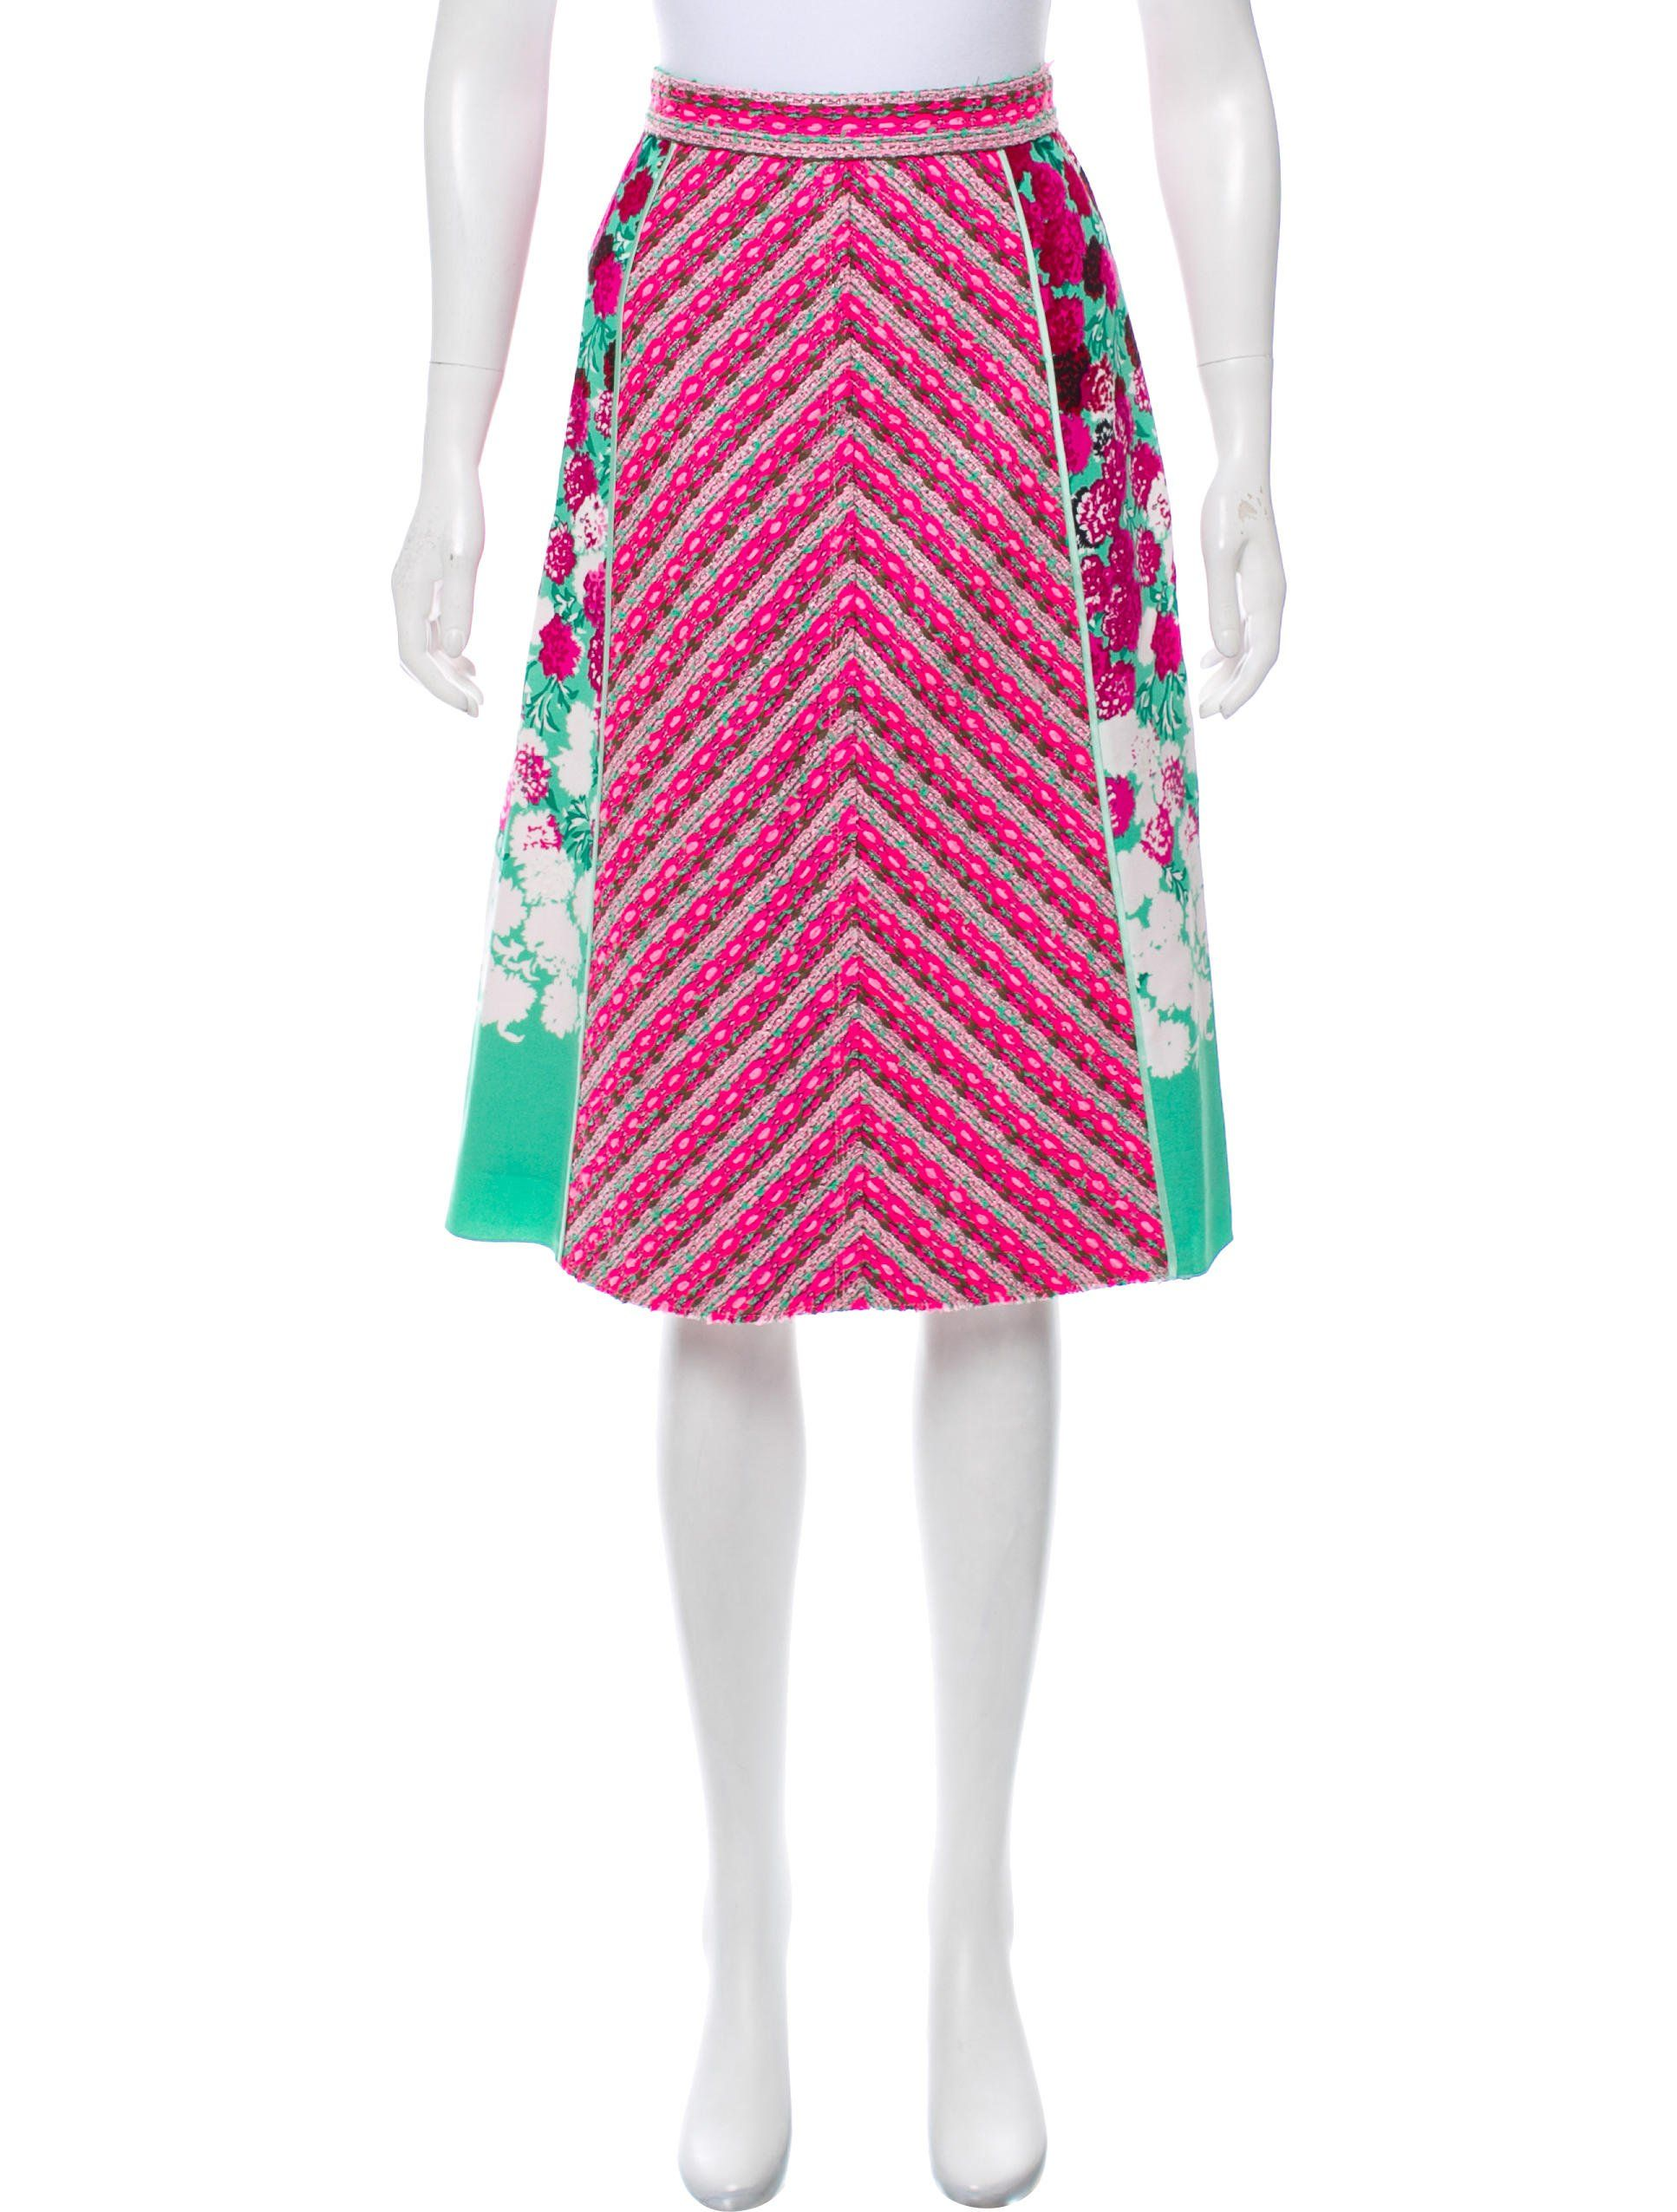 720a5c1b1a51 Pink, green and white Marc Jacobs tweed knee-length skirt with floral print  at sides, zip closure and hook-and-eye latch closures at back.